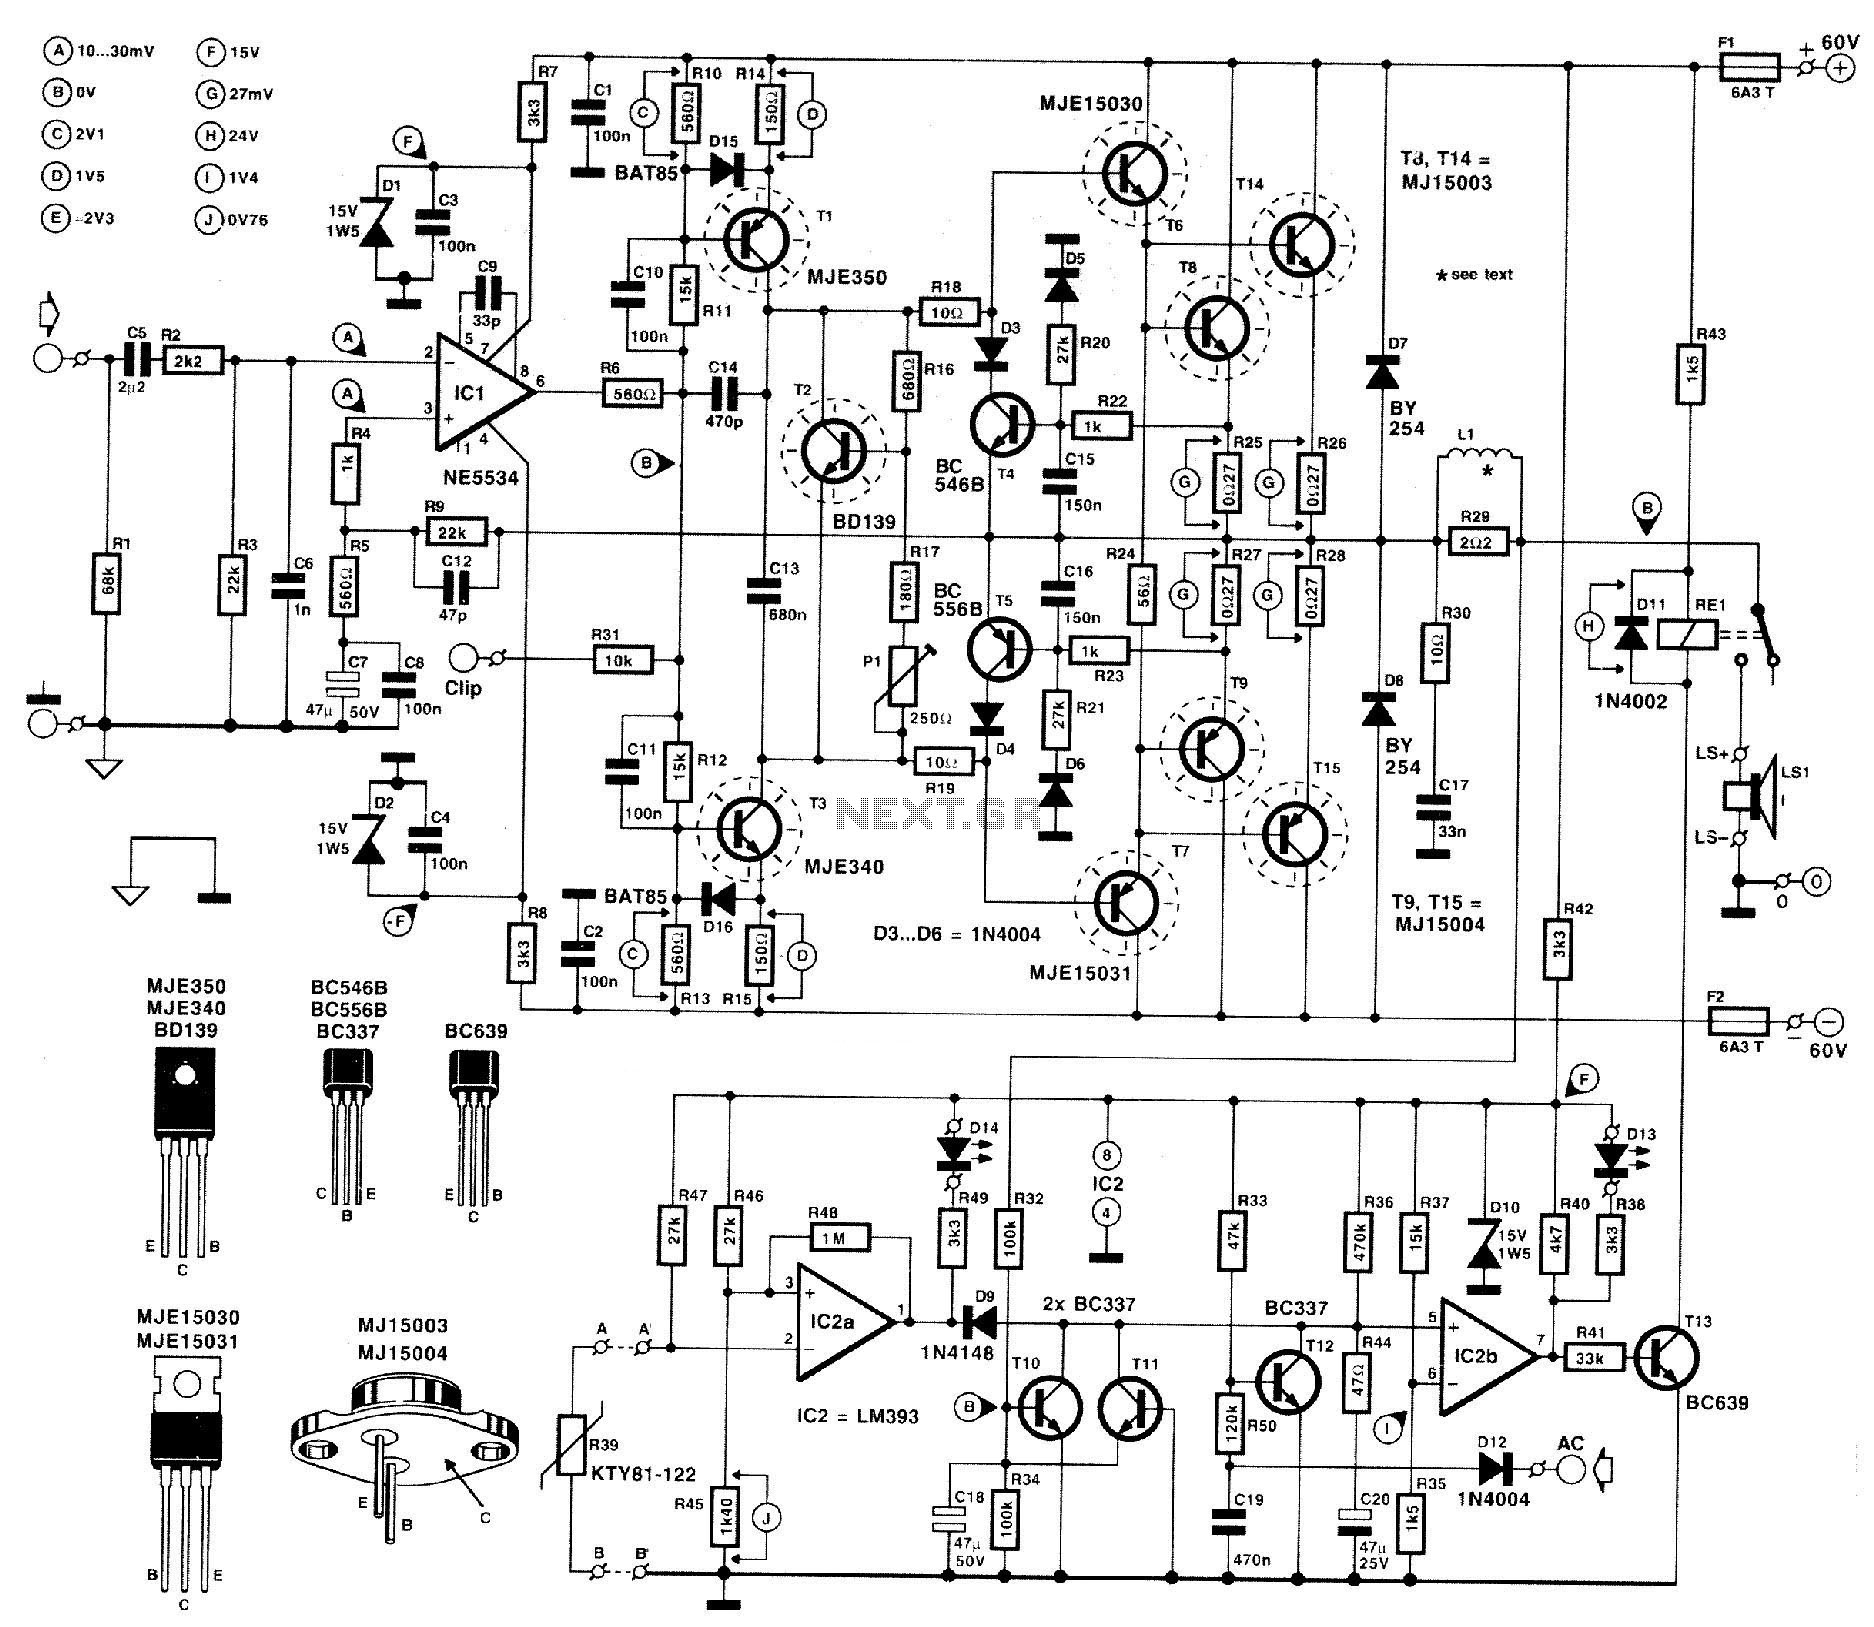 pa 300 wiring diagram car wiring diagram download moodswings co Wiring Diagram For Car Stereo With Amplifier amplifier wiring diagram readingrat net pa 300 wiring diagram speaker wire color code pioneer images aftermarket pioneer radio, wiring diagram car audio wiring diagram for car stereo with amplifier